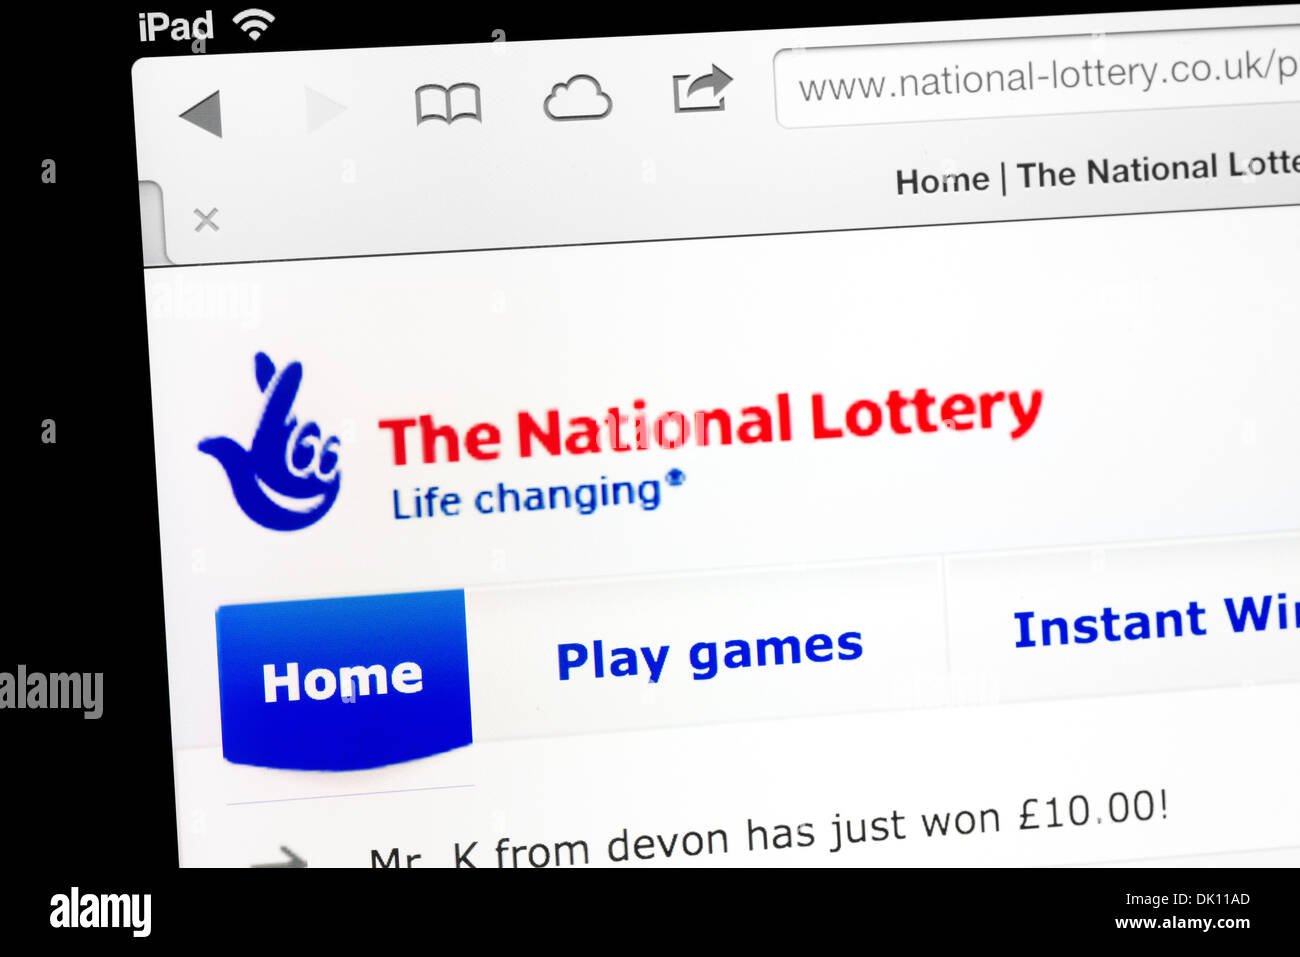 The UK National Lottery website on an iPad - Stock Image